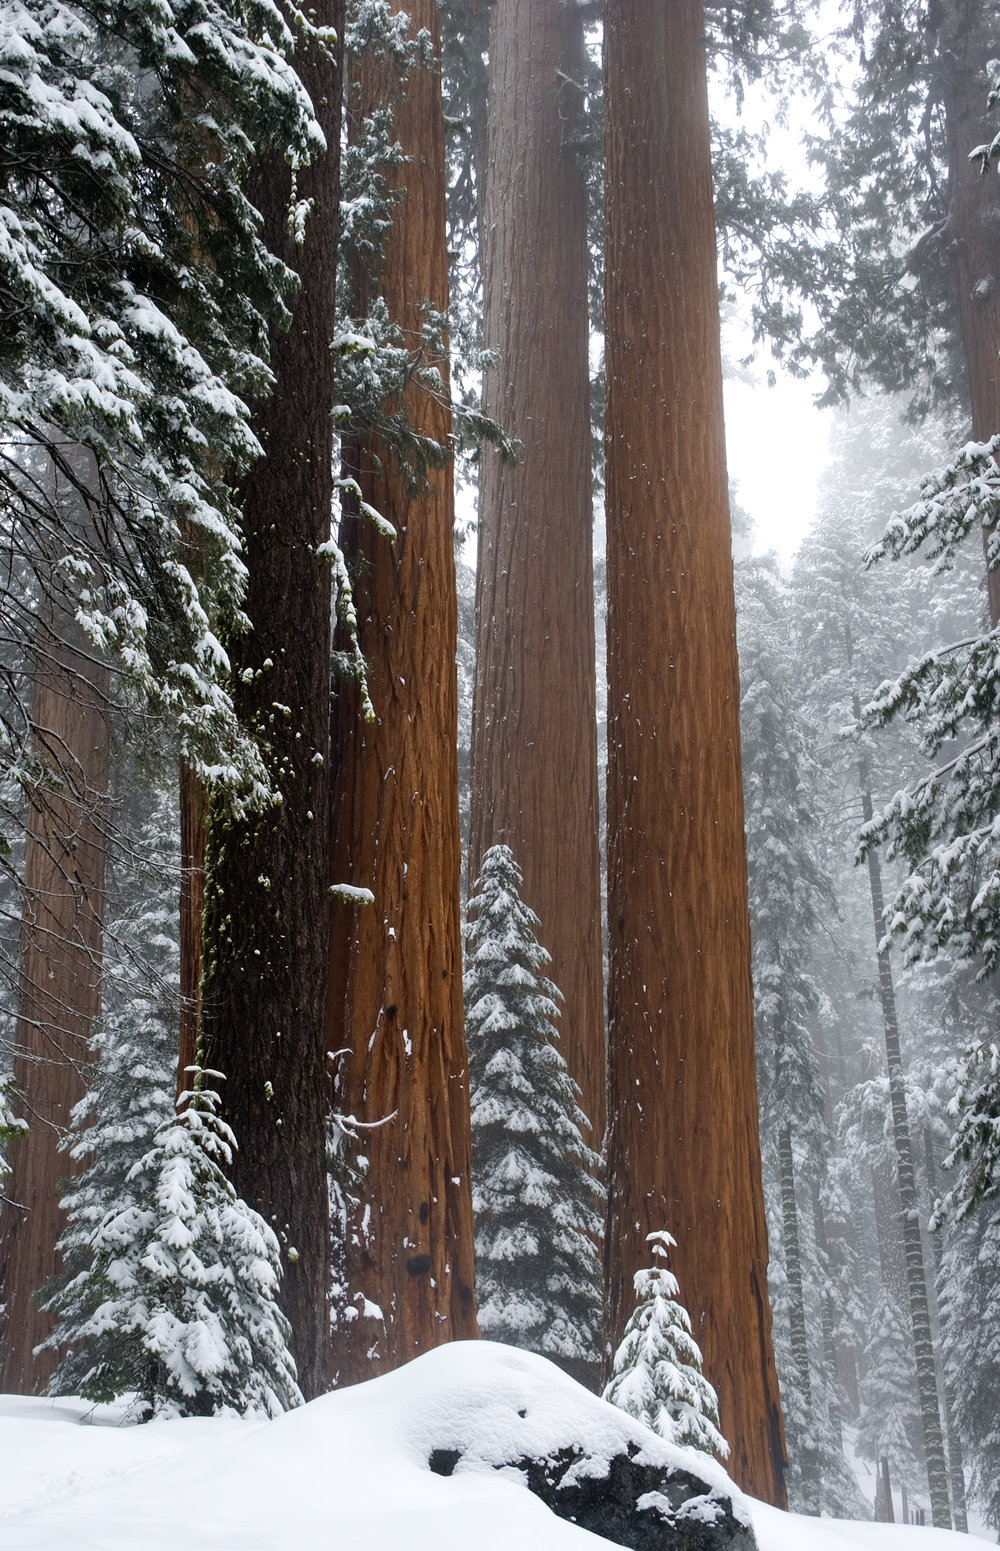 Giant Sequoia's #1